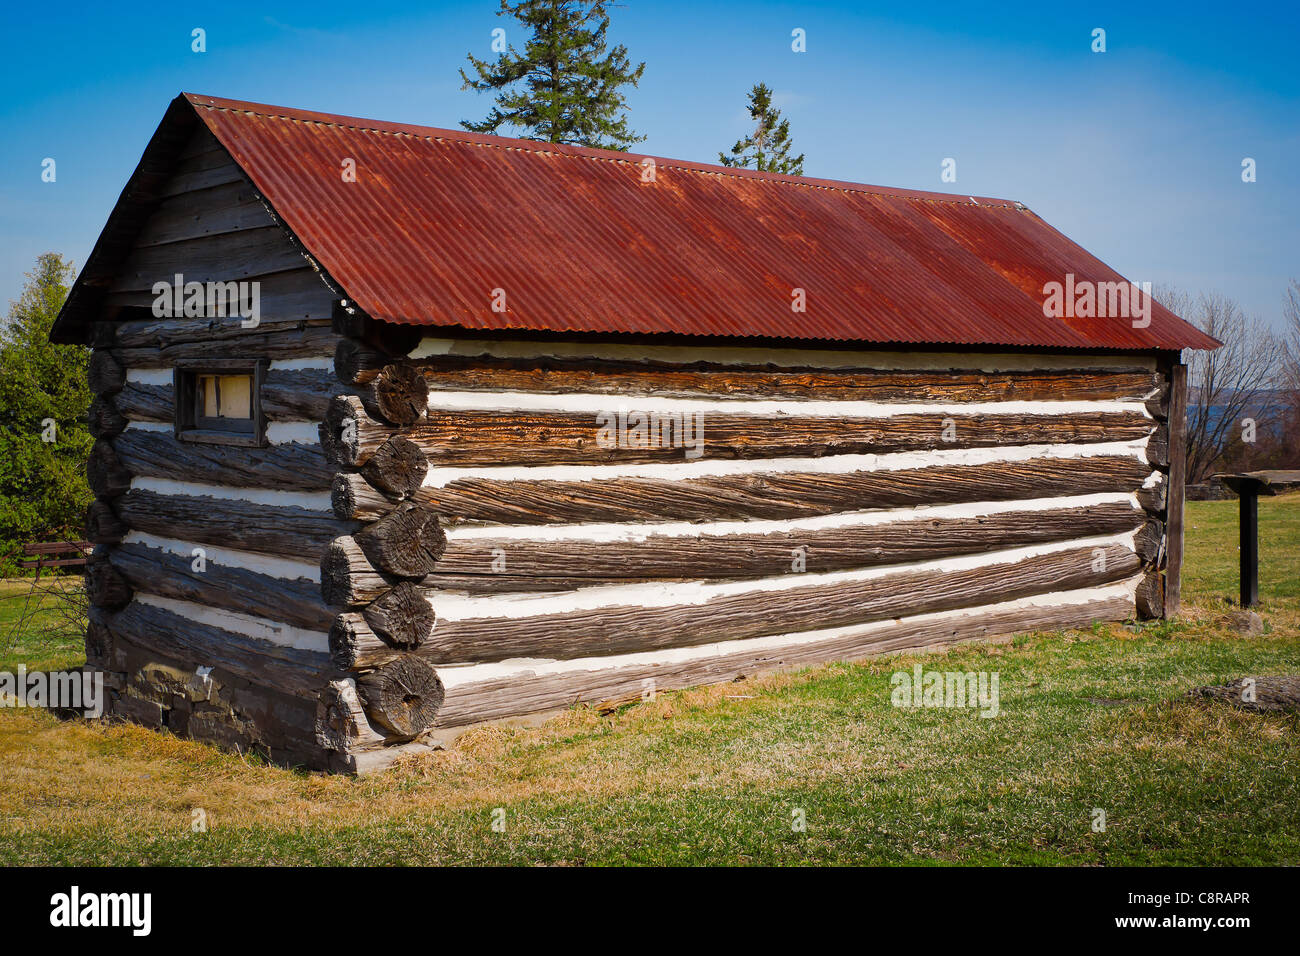 A Very Small But Long Old Log Cabin With Rusted Tin Roof